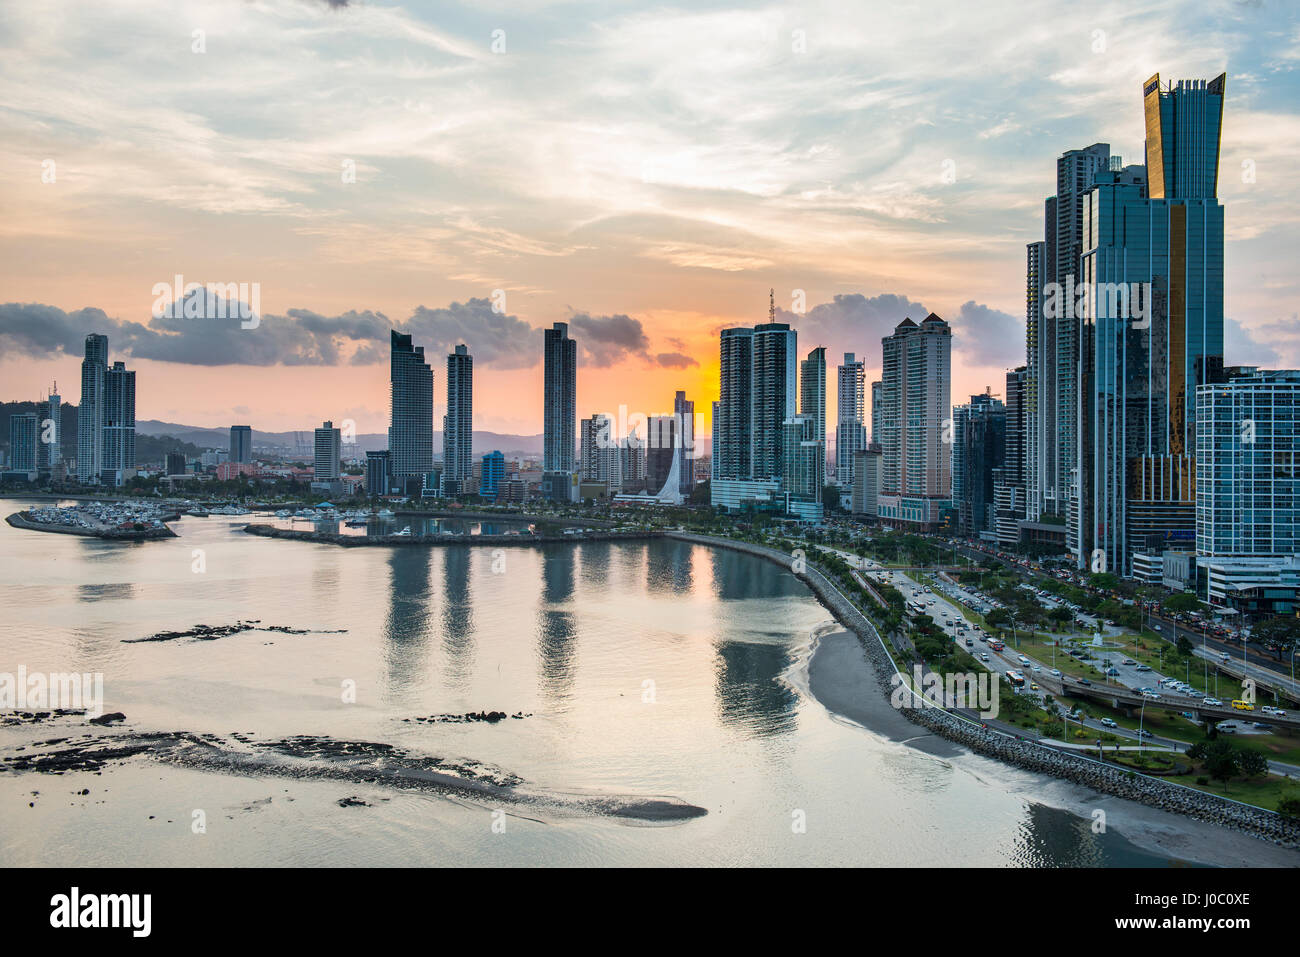 Skyline of Panama City at sunset, Panama City, Panama, Central America - Stock Image